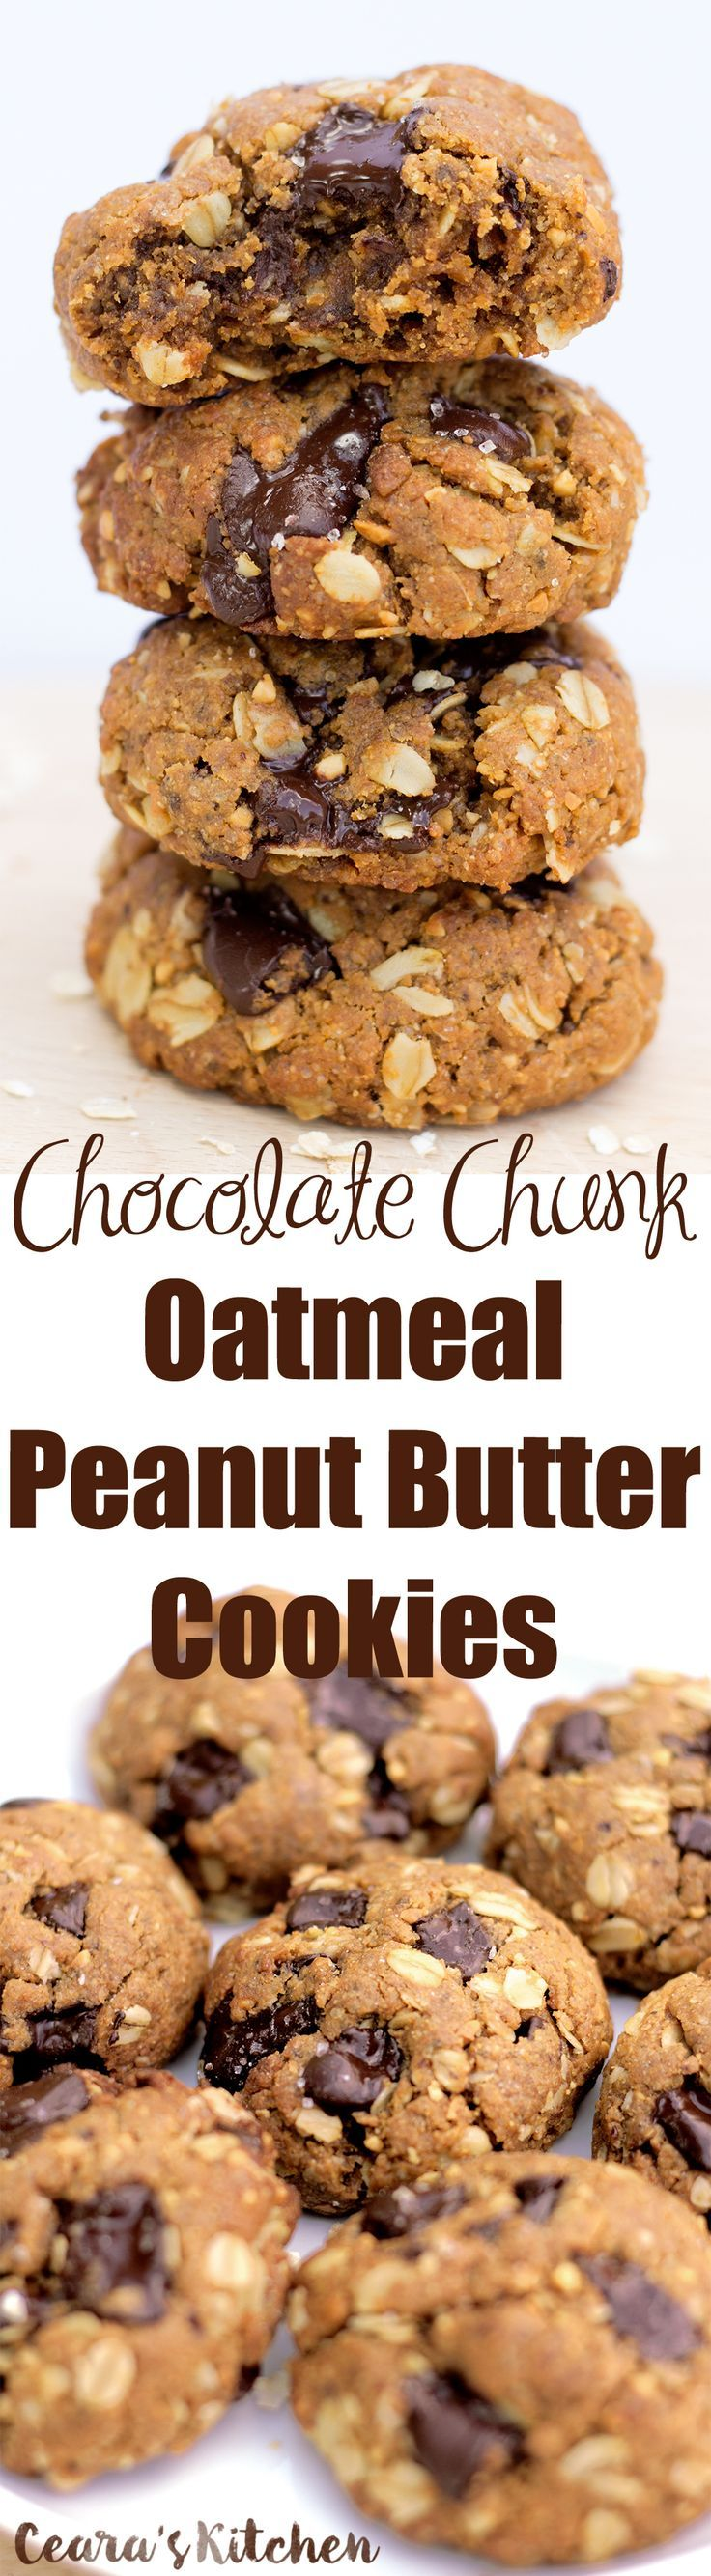 These Chocolate Chunk Oatmeal Peanut Butter Cookies are completely flourless, extremely chewy, thick and filled with melty chocolate chunks (plus a sprinkle of sea salt on top!)!